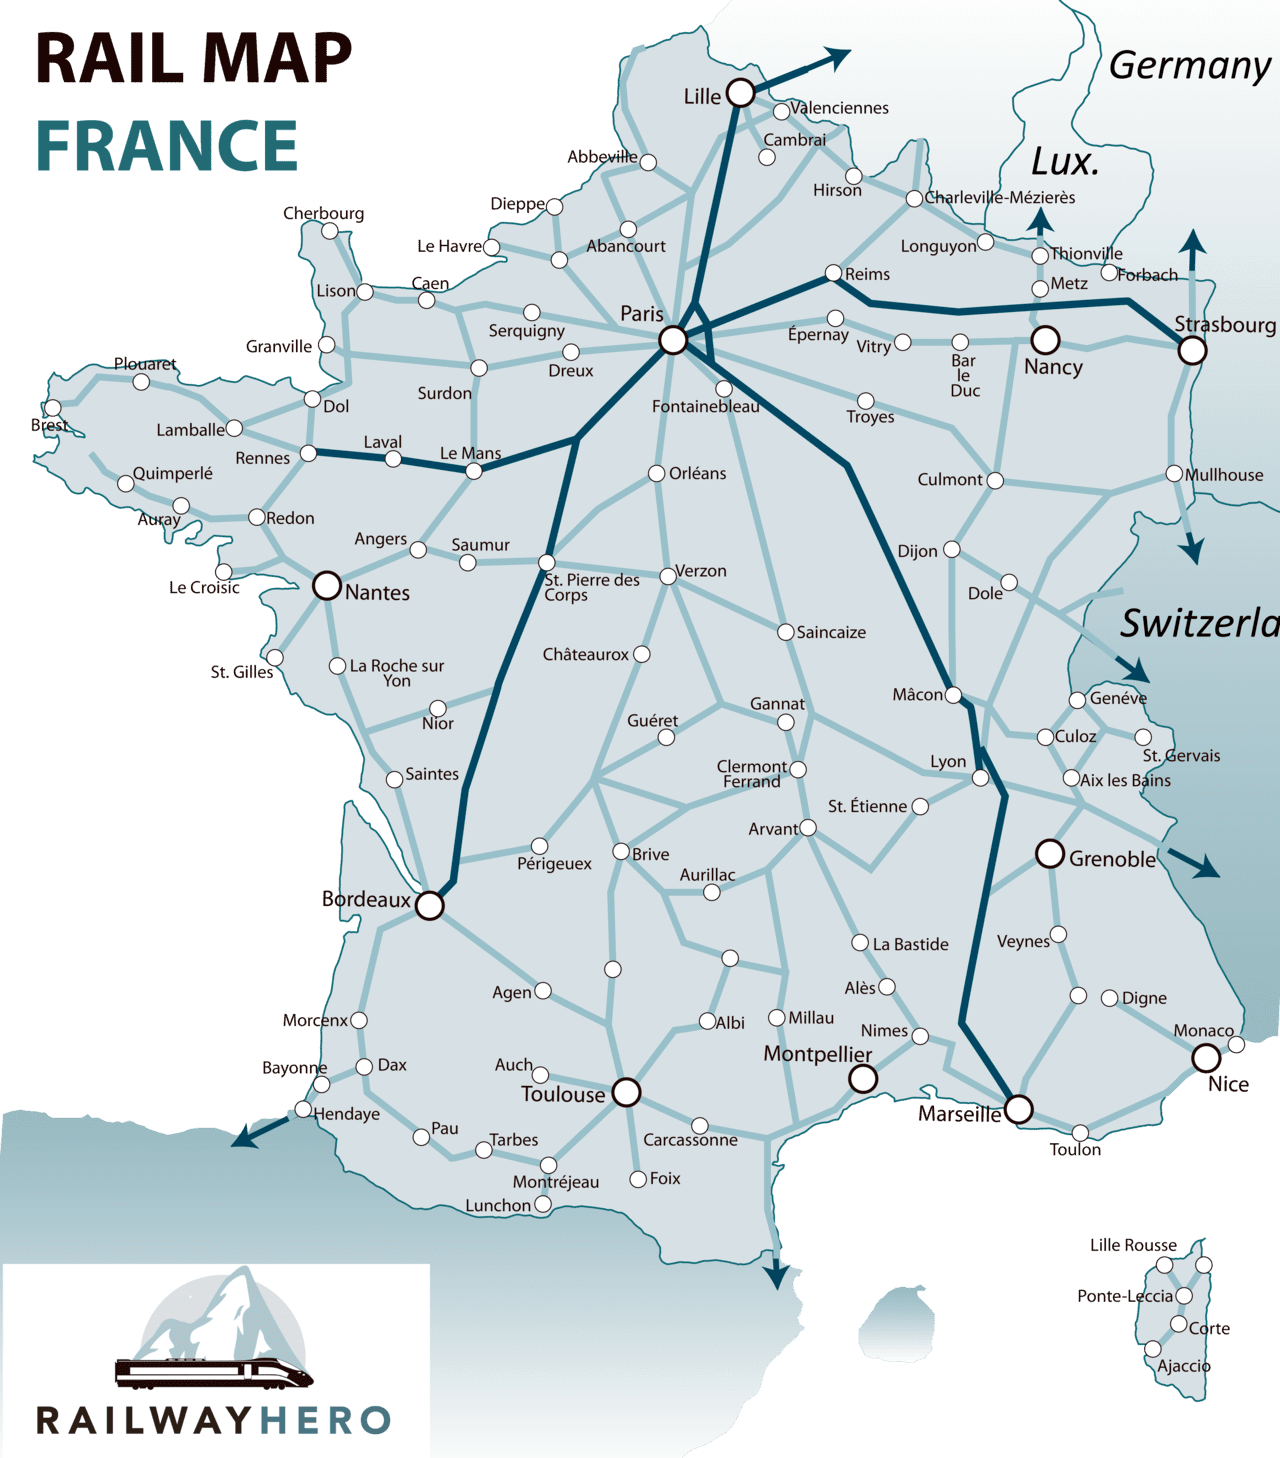 france rail map railwayhero